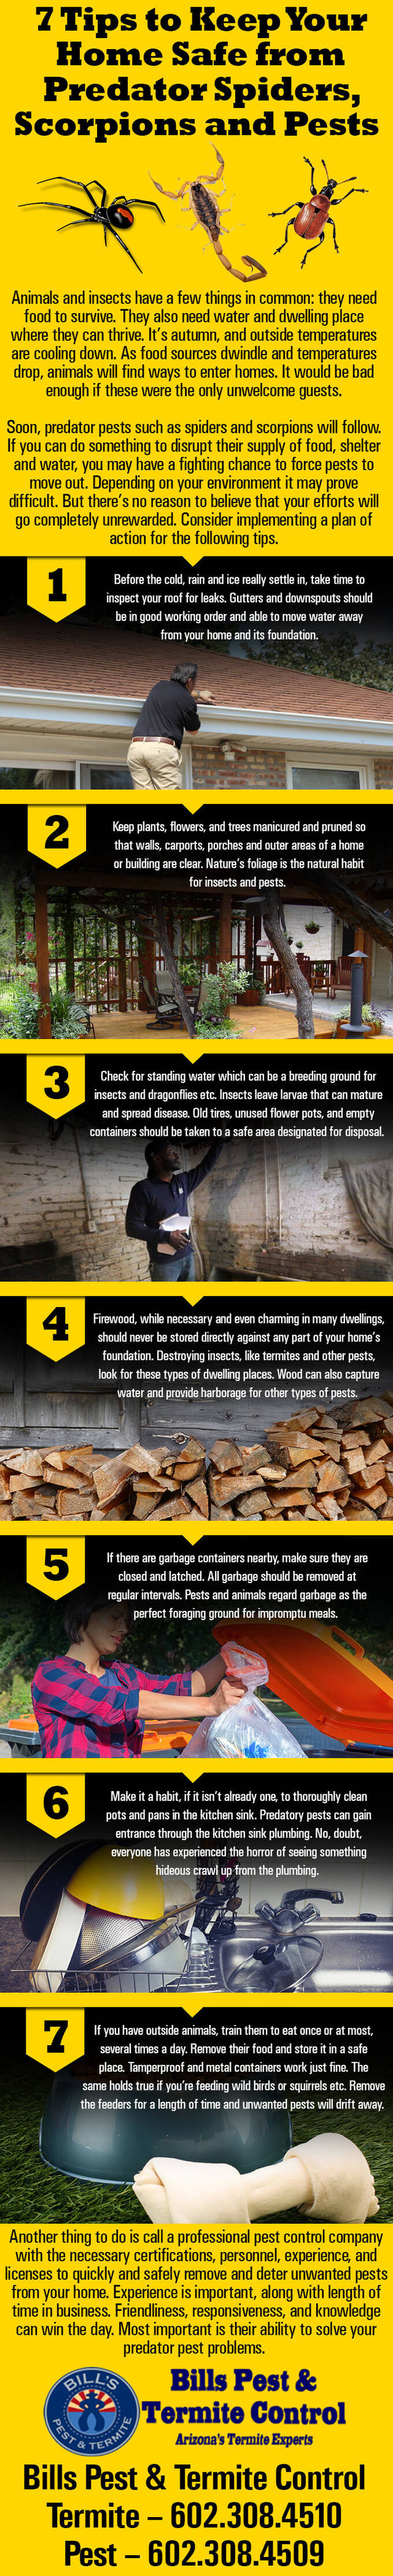 Infographic 145 7 tips to keep your home safe